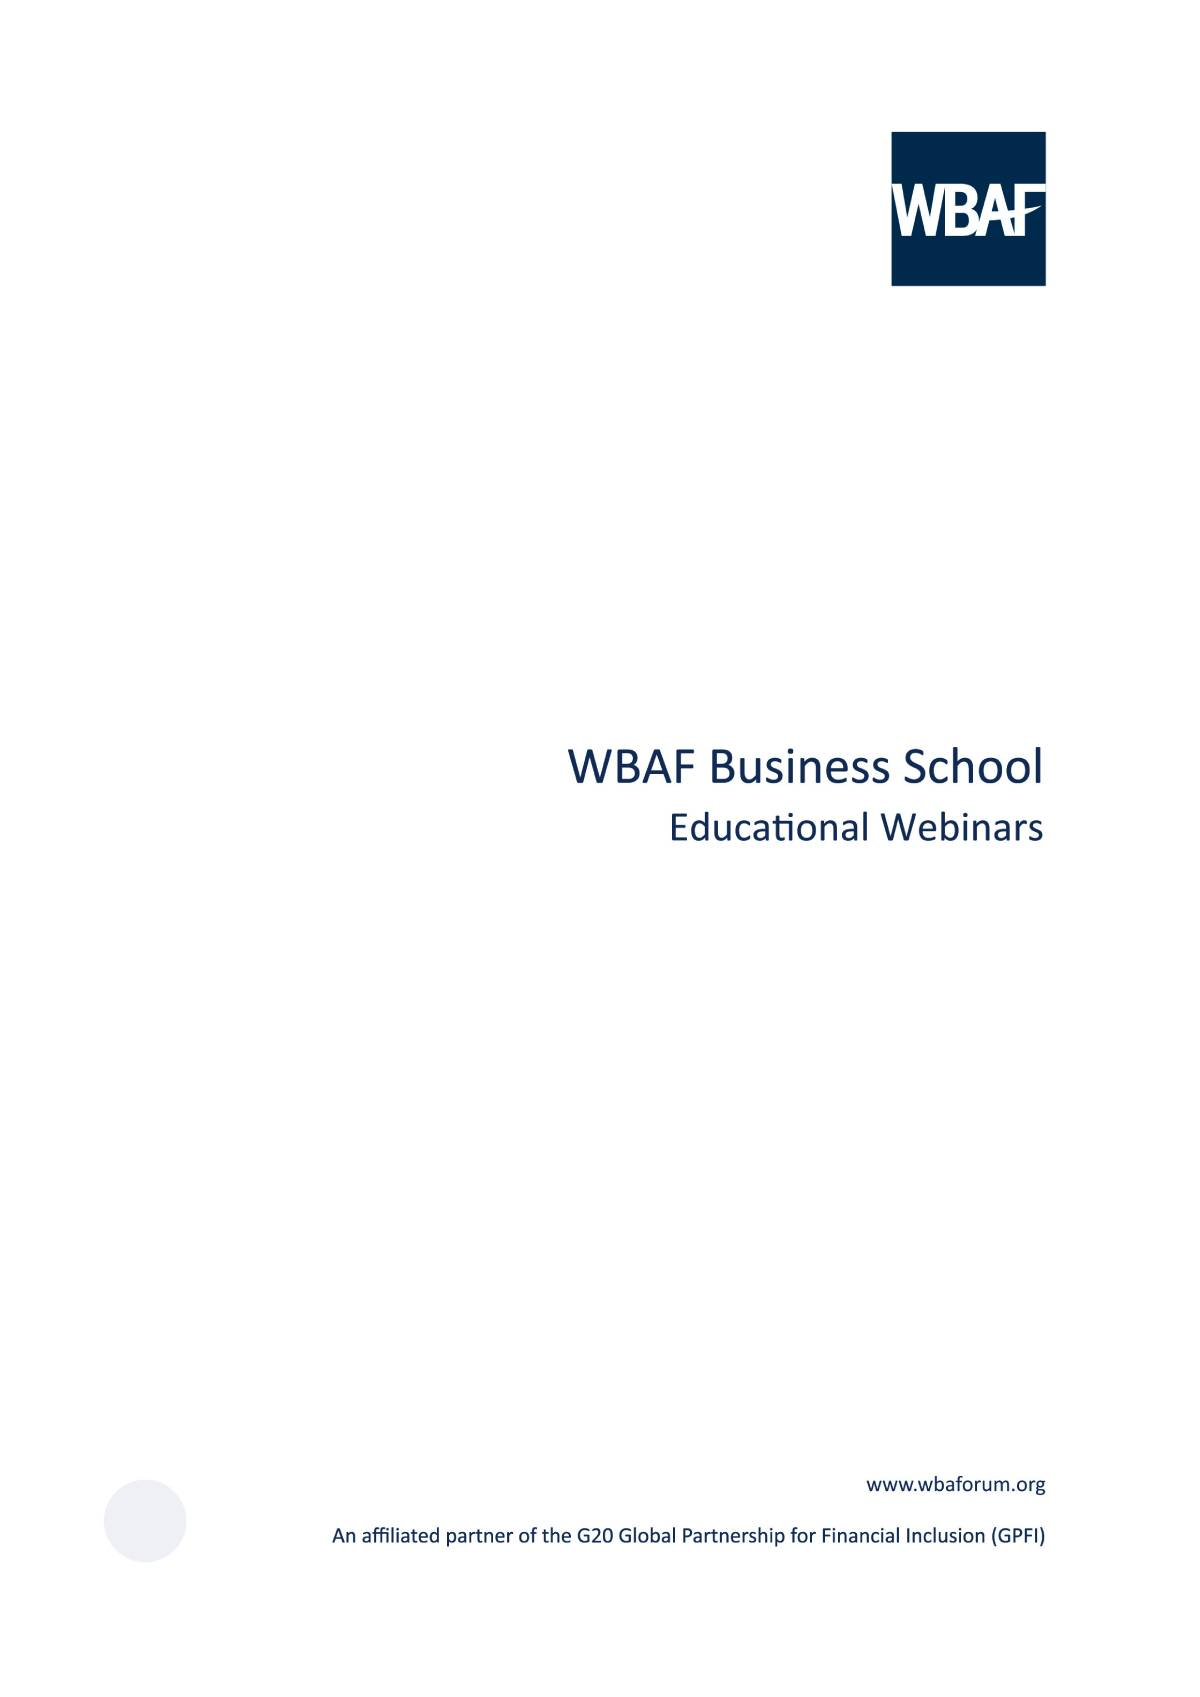 Wbaf Business School - Educational Webinars